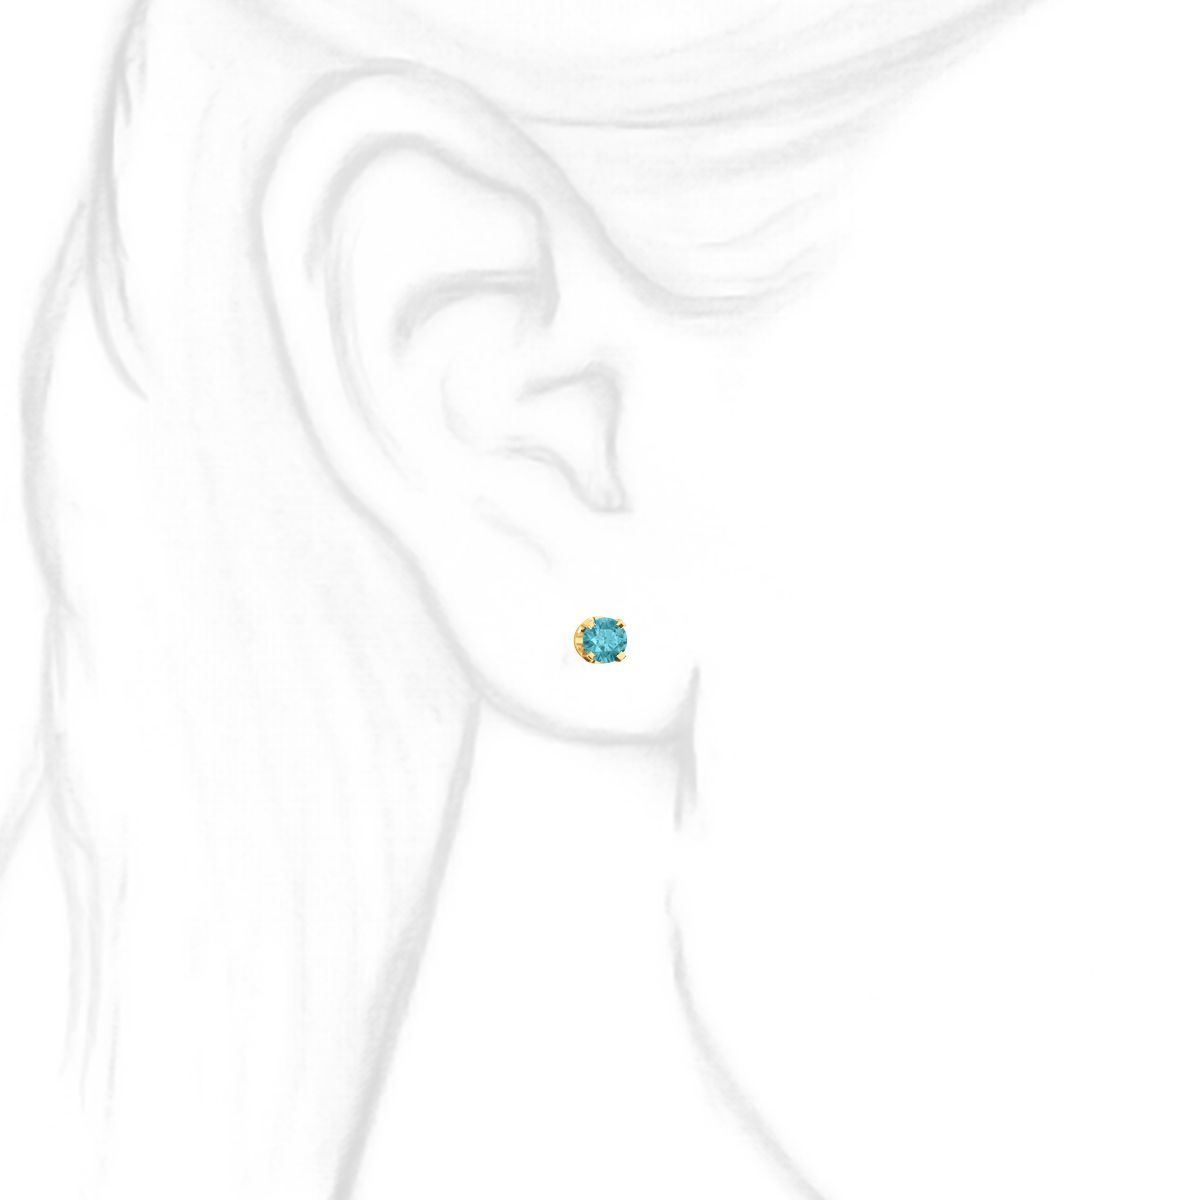 4mm 05cts Genuine Natural Blue Zircon 4 Prong Screw Back Stud Yellow Earrings 14k